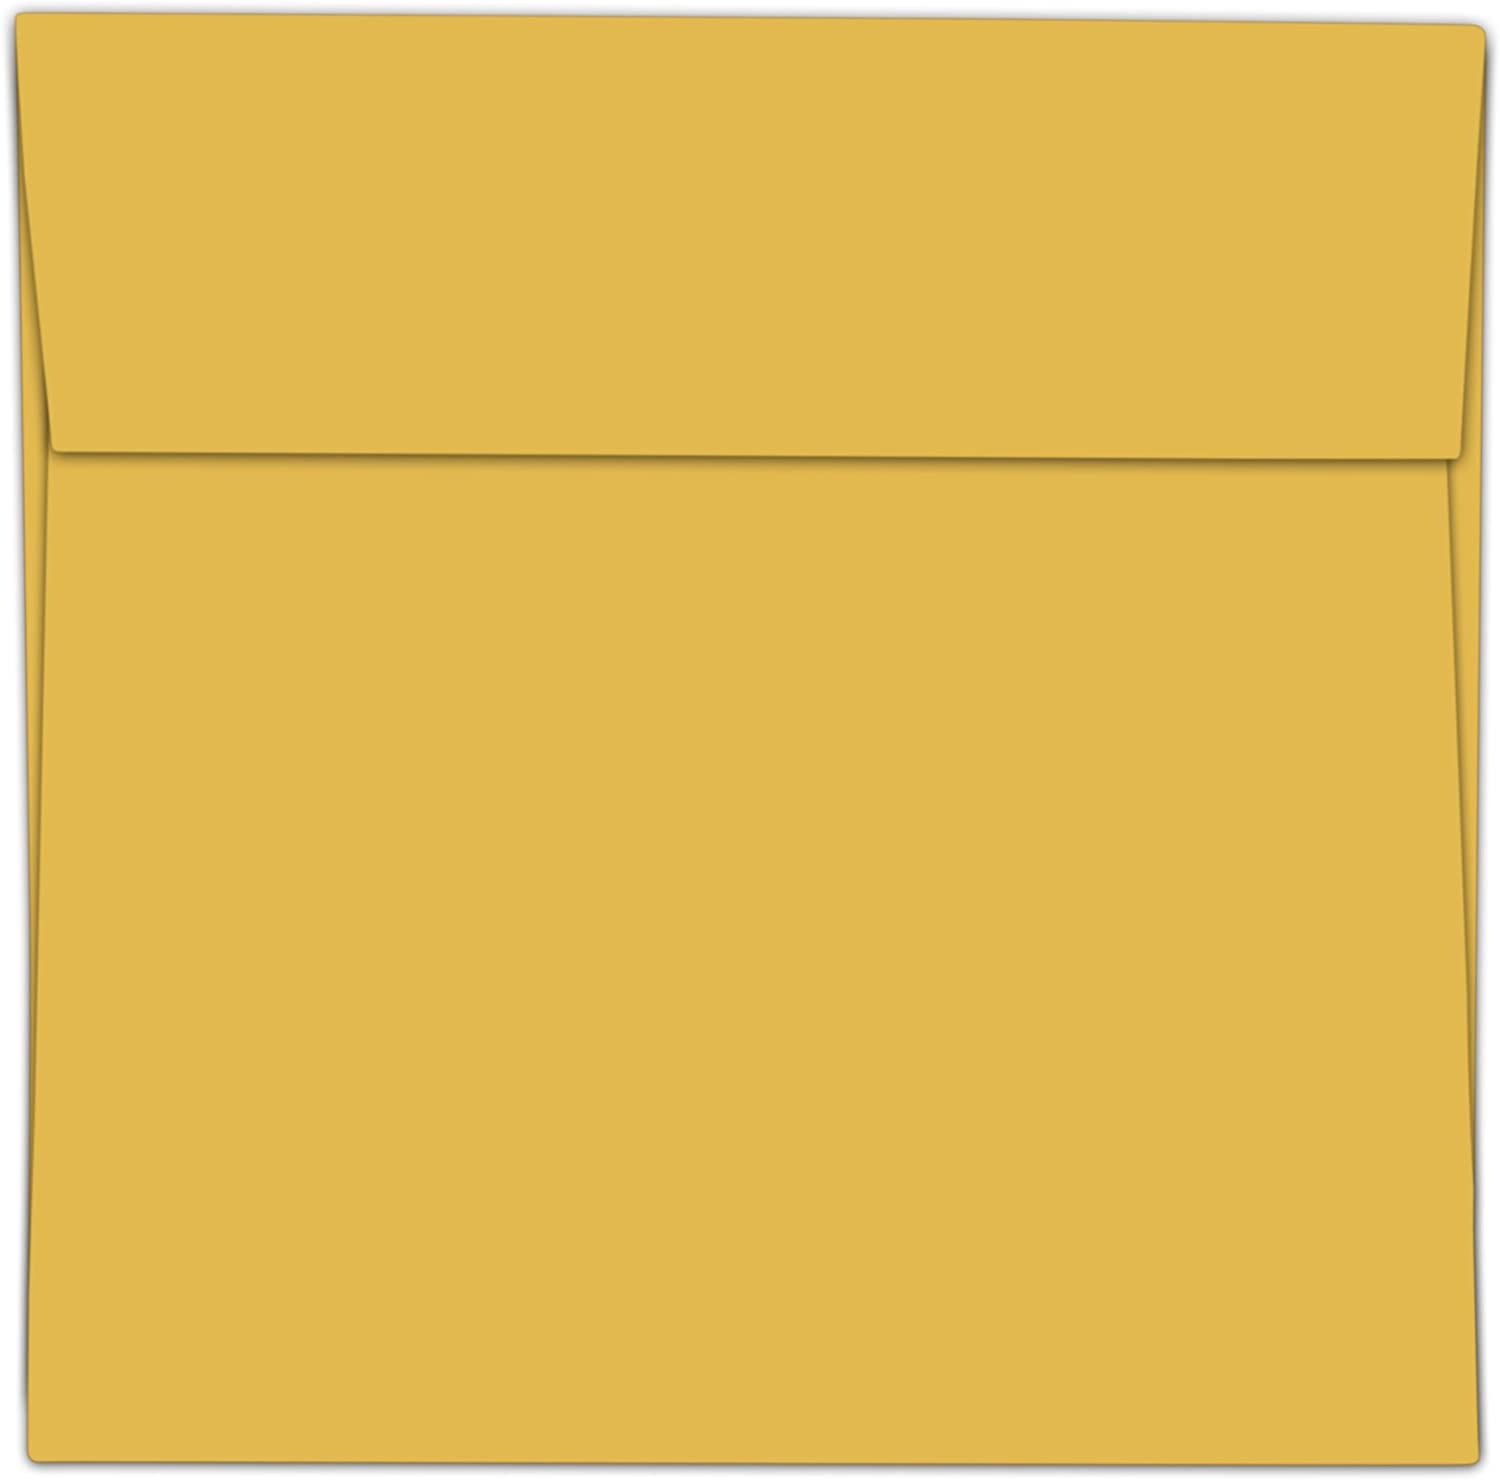 Square Phoenix Mall Envelope Paper Craft Business Party Gre Letter Invitation Phoenix Mall